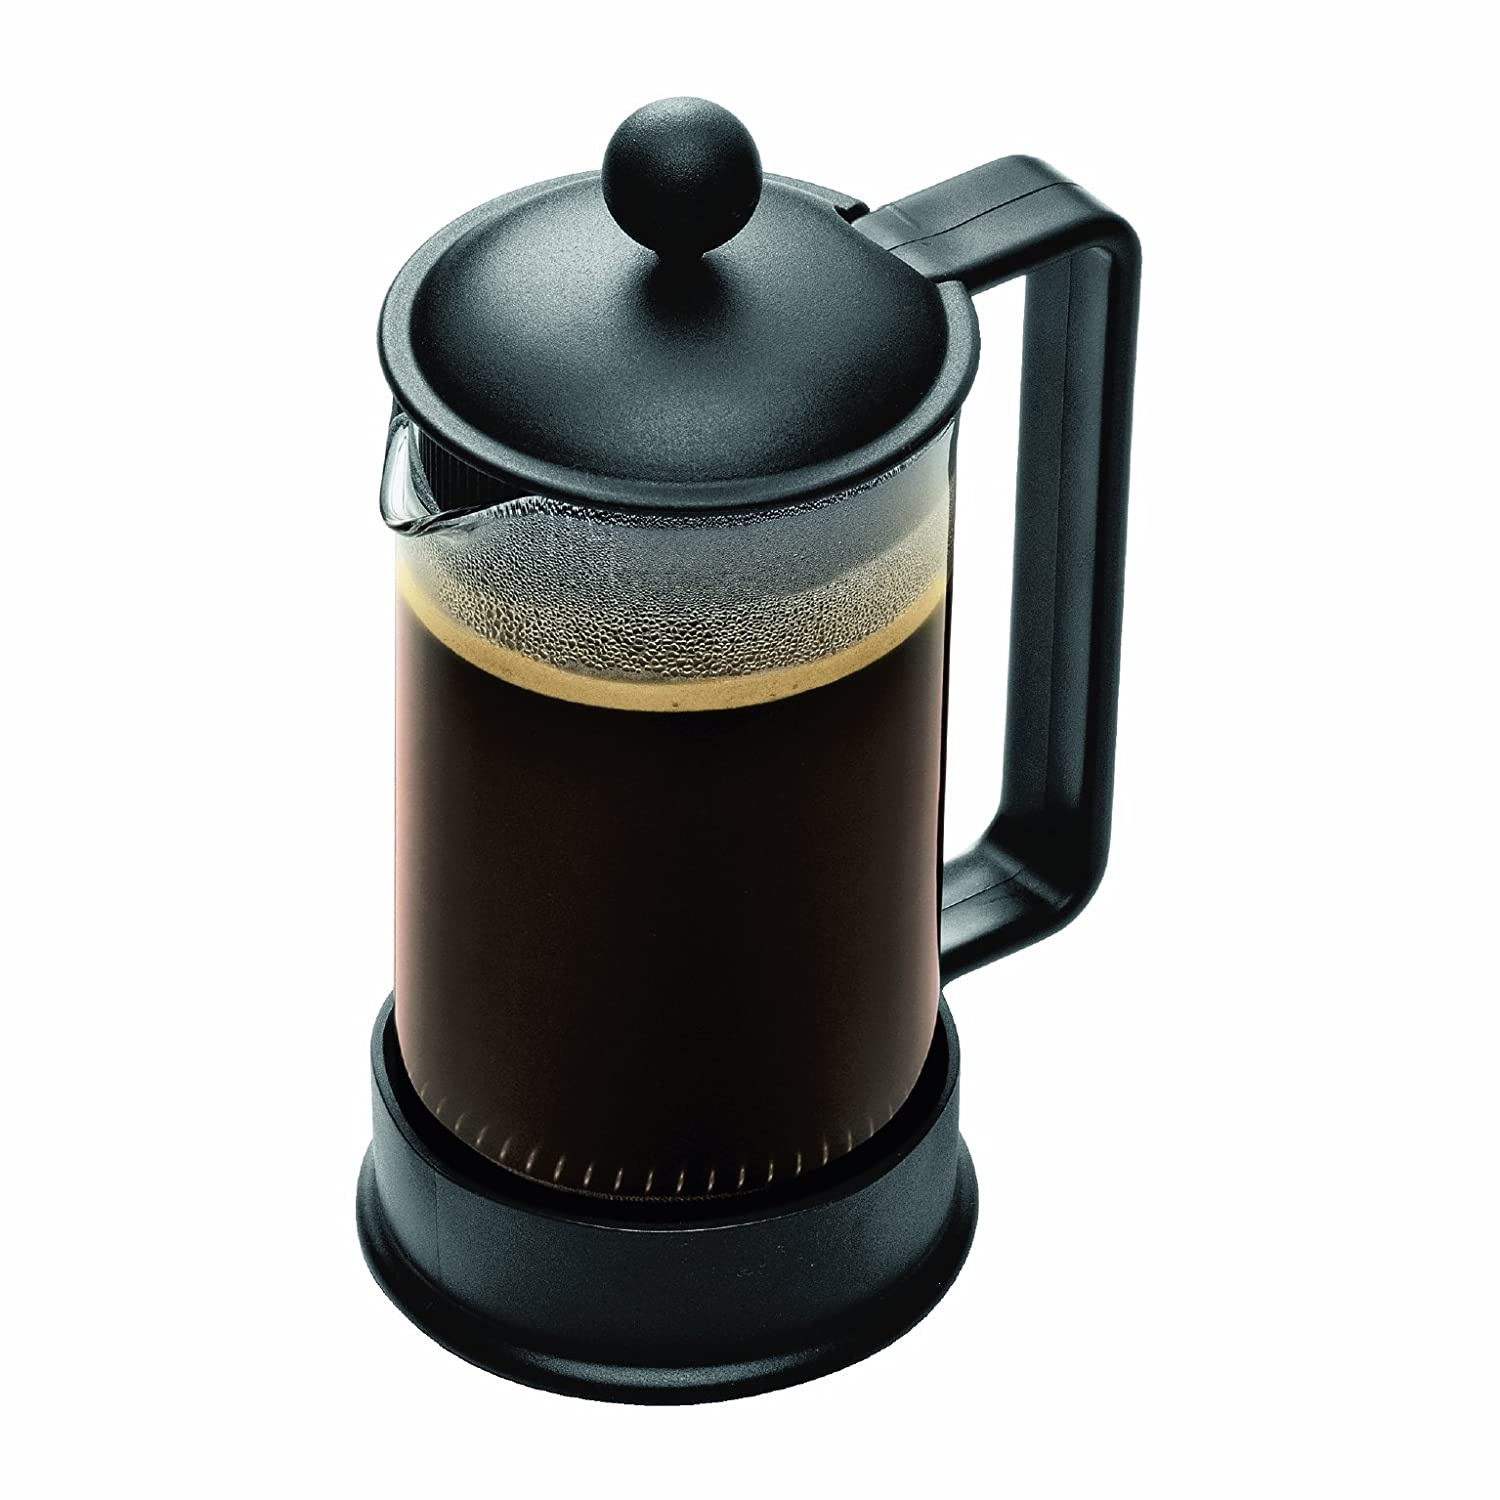 French Press Coffee Maker Images : These Small French Press Coffee Makers Are Pretty Slick Top Off My Coffee Please